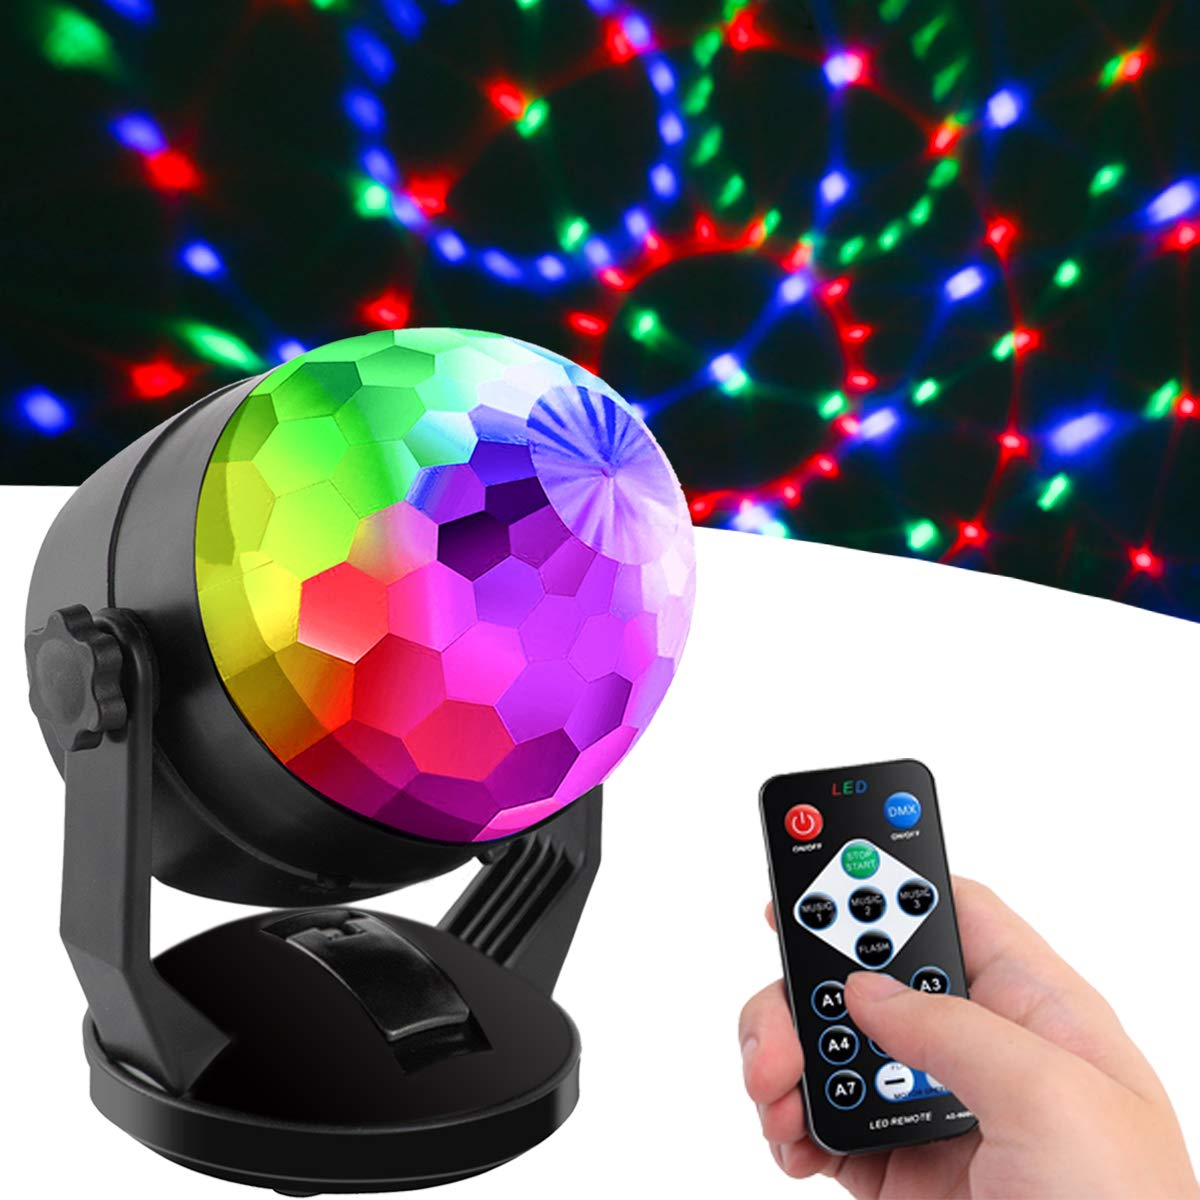 Activated Control Portable Lighting Birthday